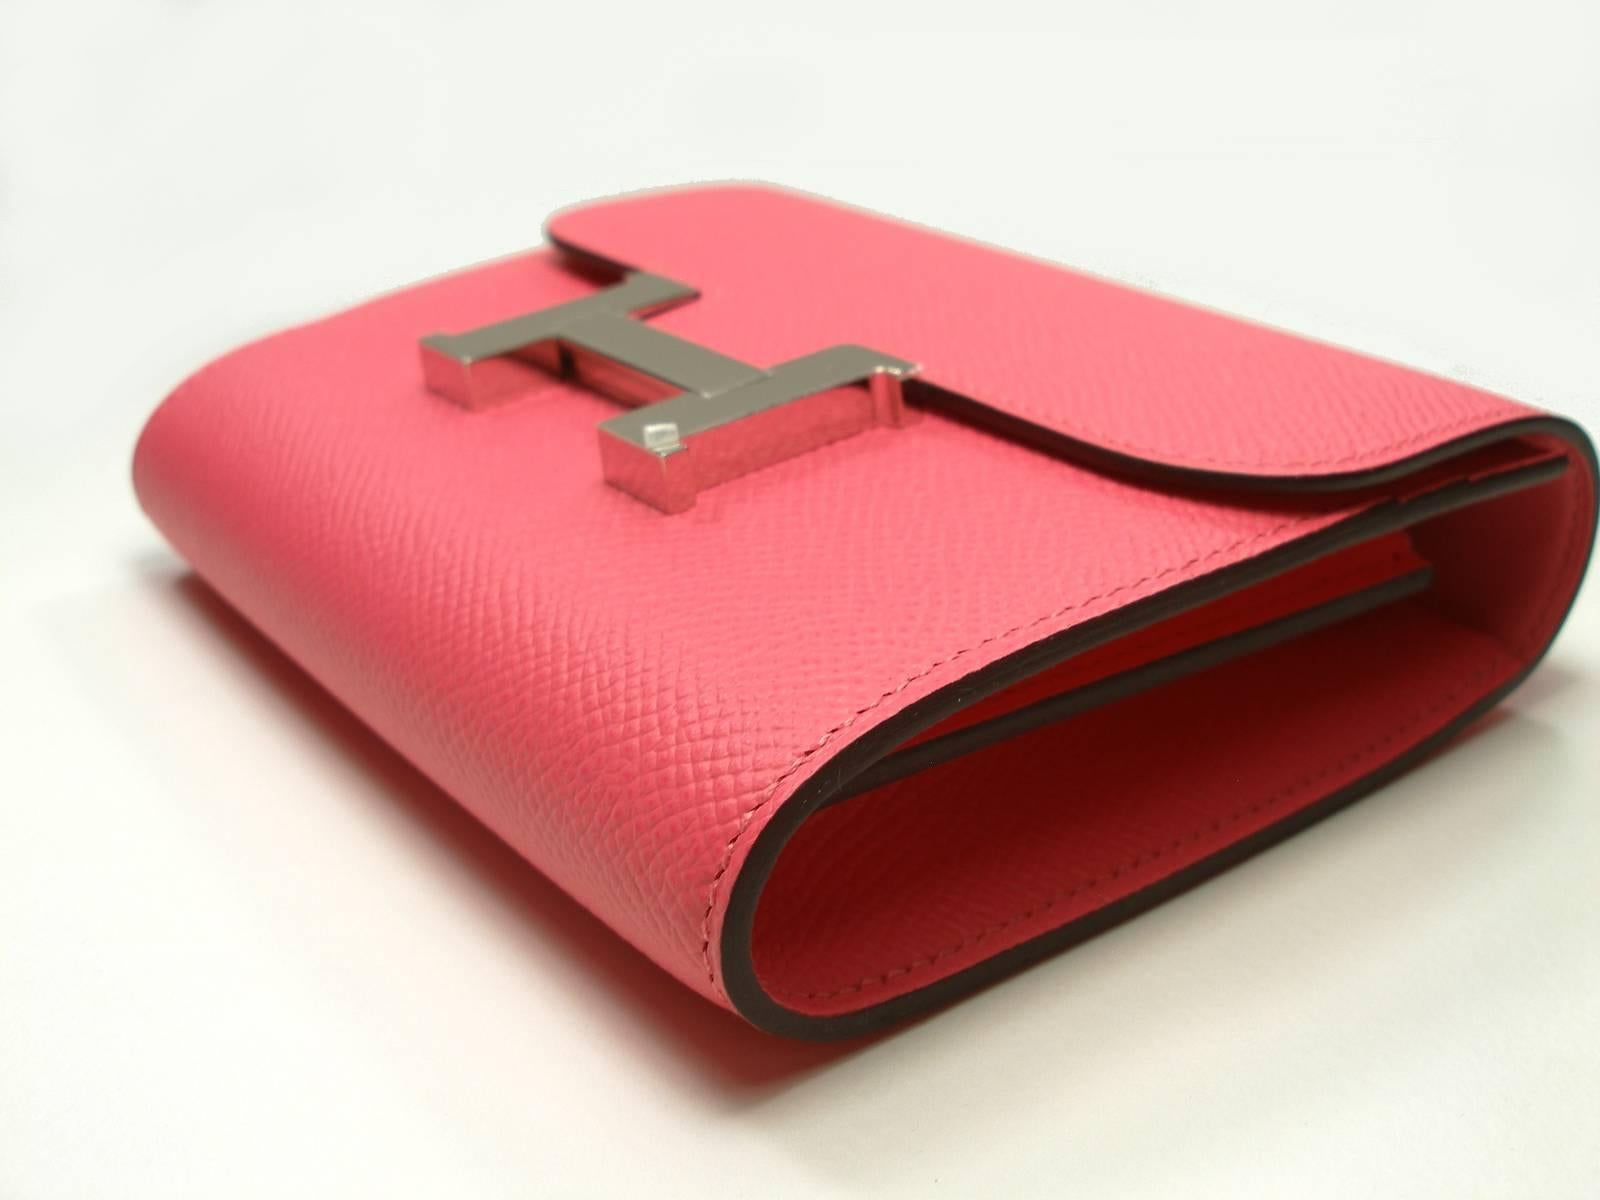 4729c4417008 ... purse rose extreme red pink epsom leather reebonz wholesale hermes blue  electric epsom constance compact wallet 09b3b f41e8 release date hermes rose  ...